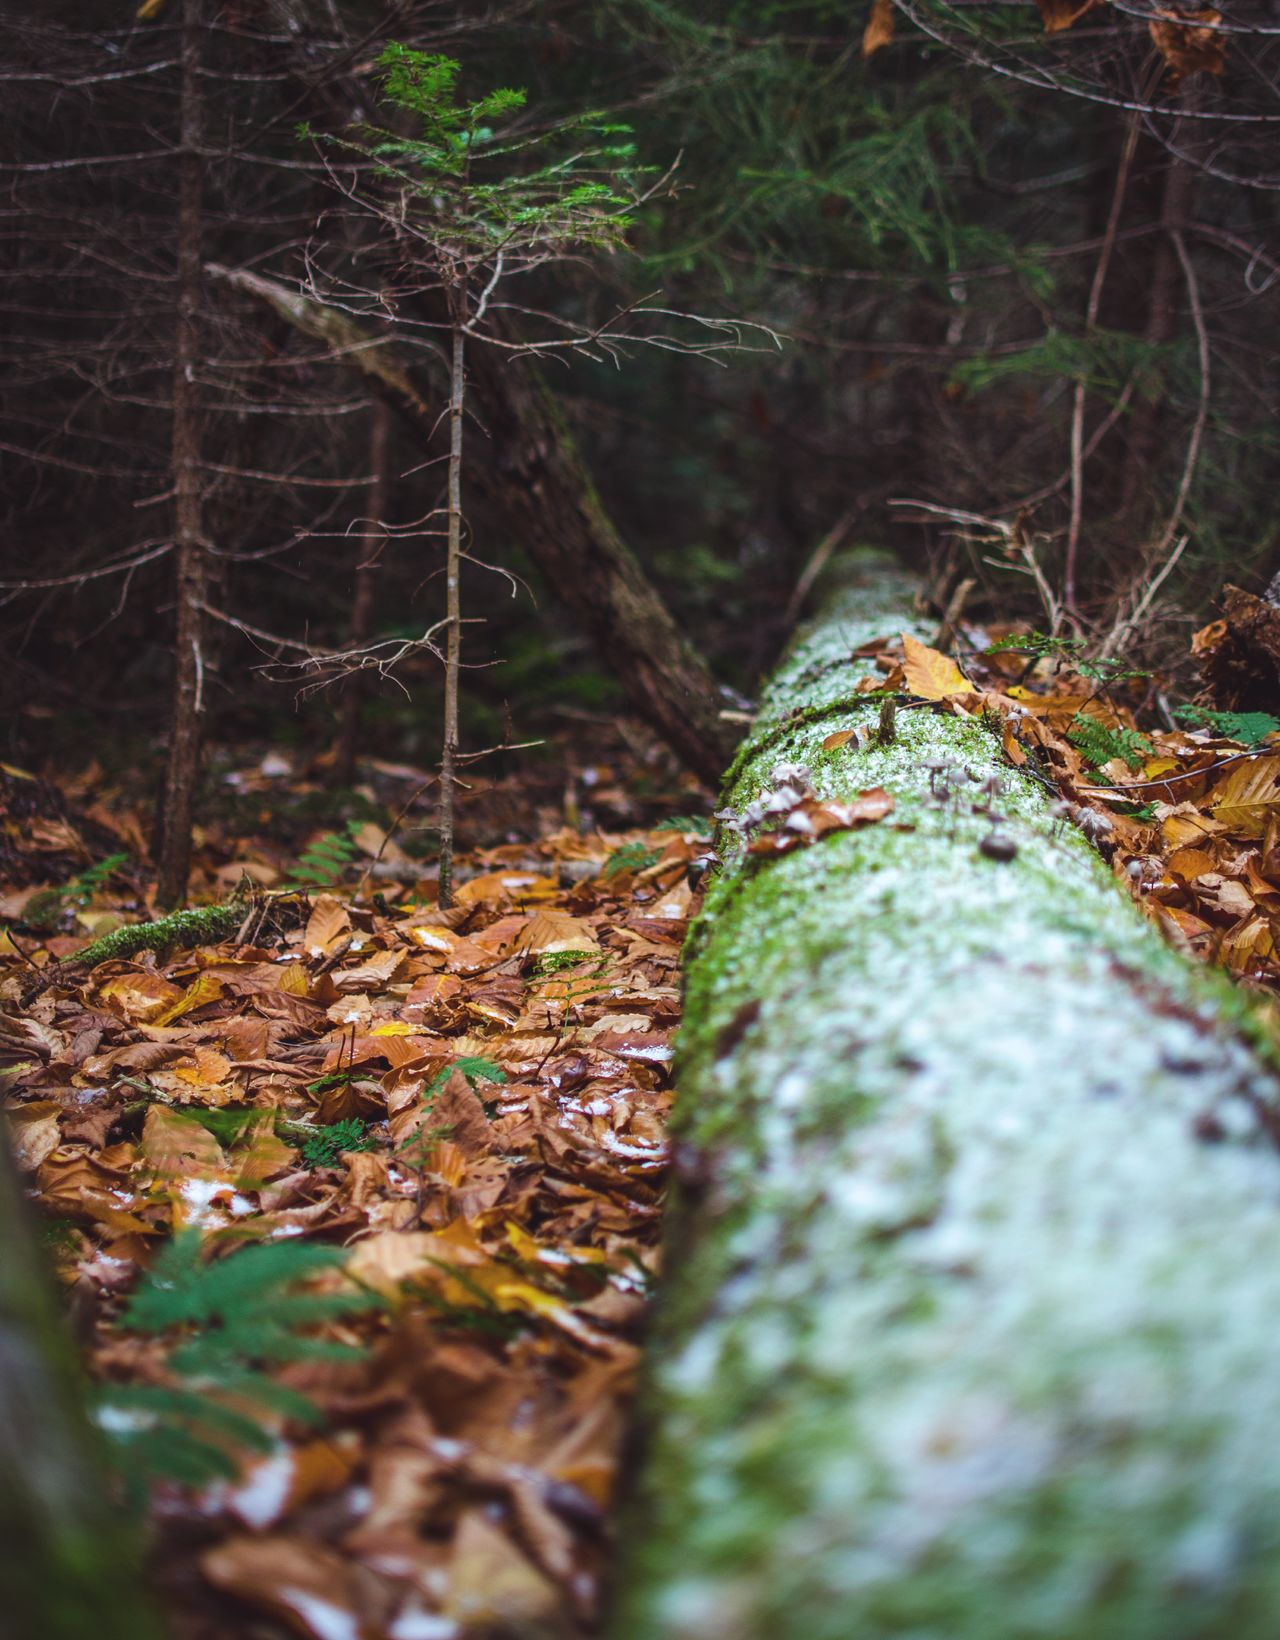 IG: Memxries Forest Nature Moss Autumn Outdoors Tree Beauty In Nature Scenics Freshness Landscape Photography Nature Photography Beauty In Nature Pine Leaves Snow Timber Leaf Growth Outdoor Camping Weeds Campfire Branch Scenery